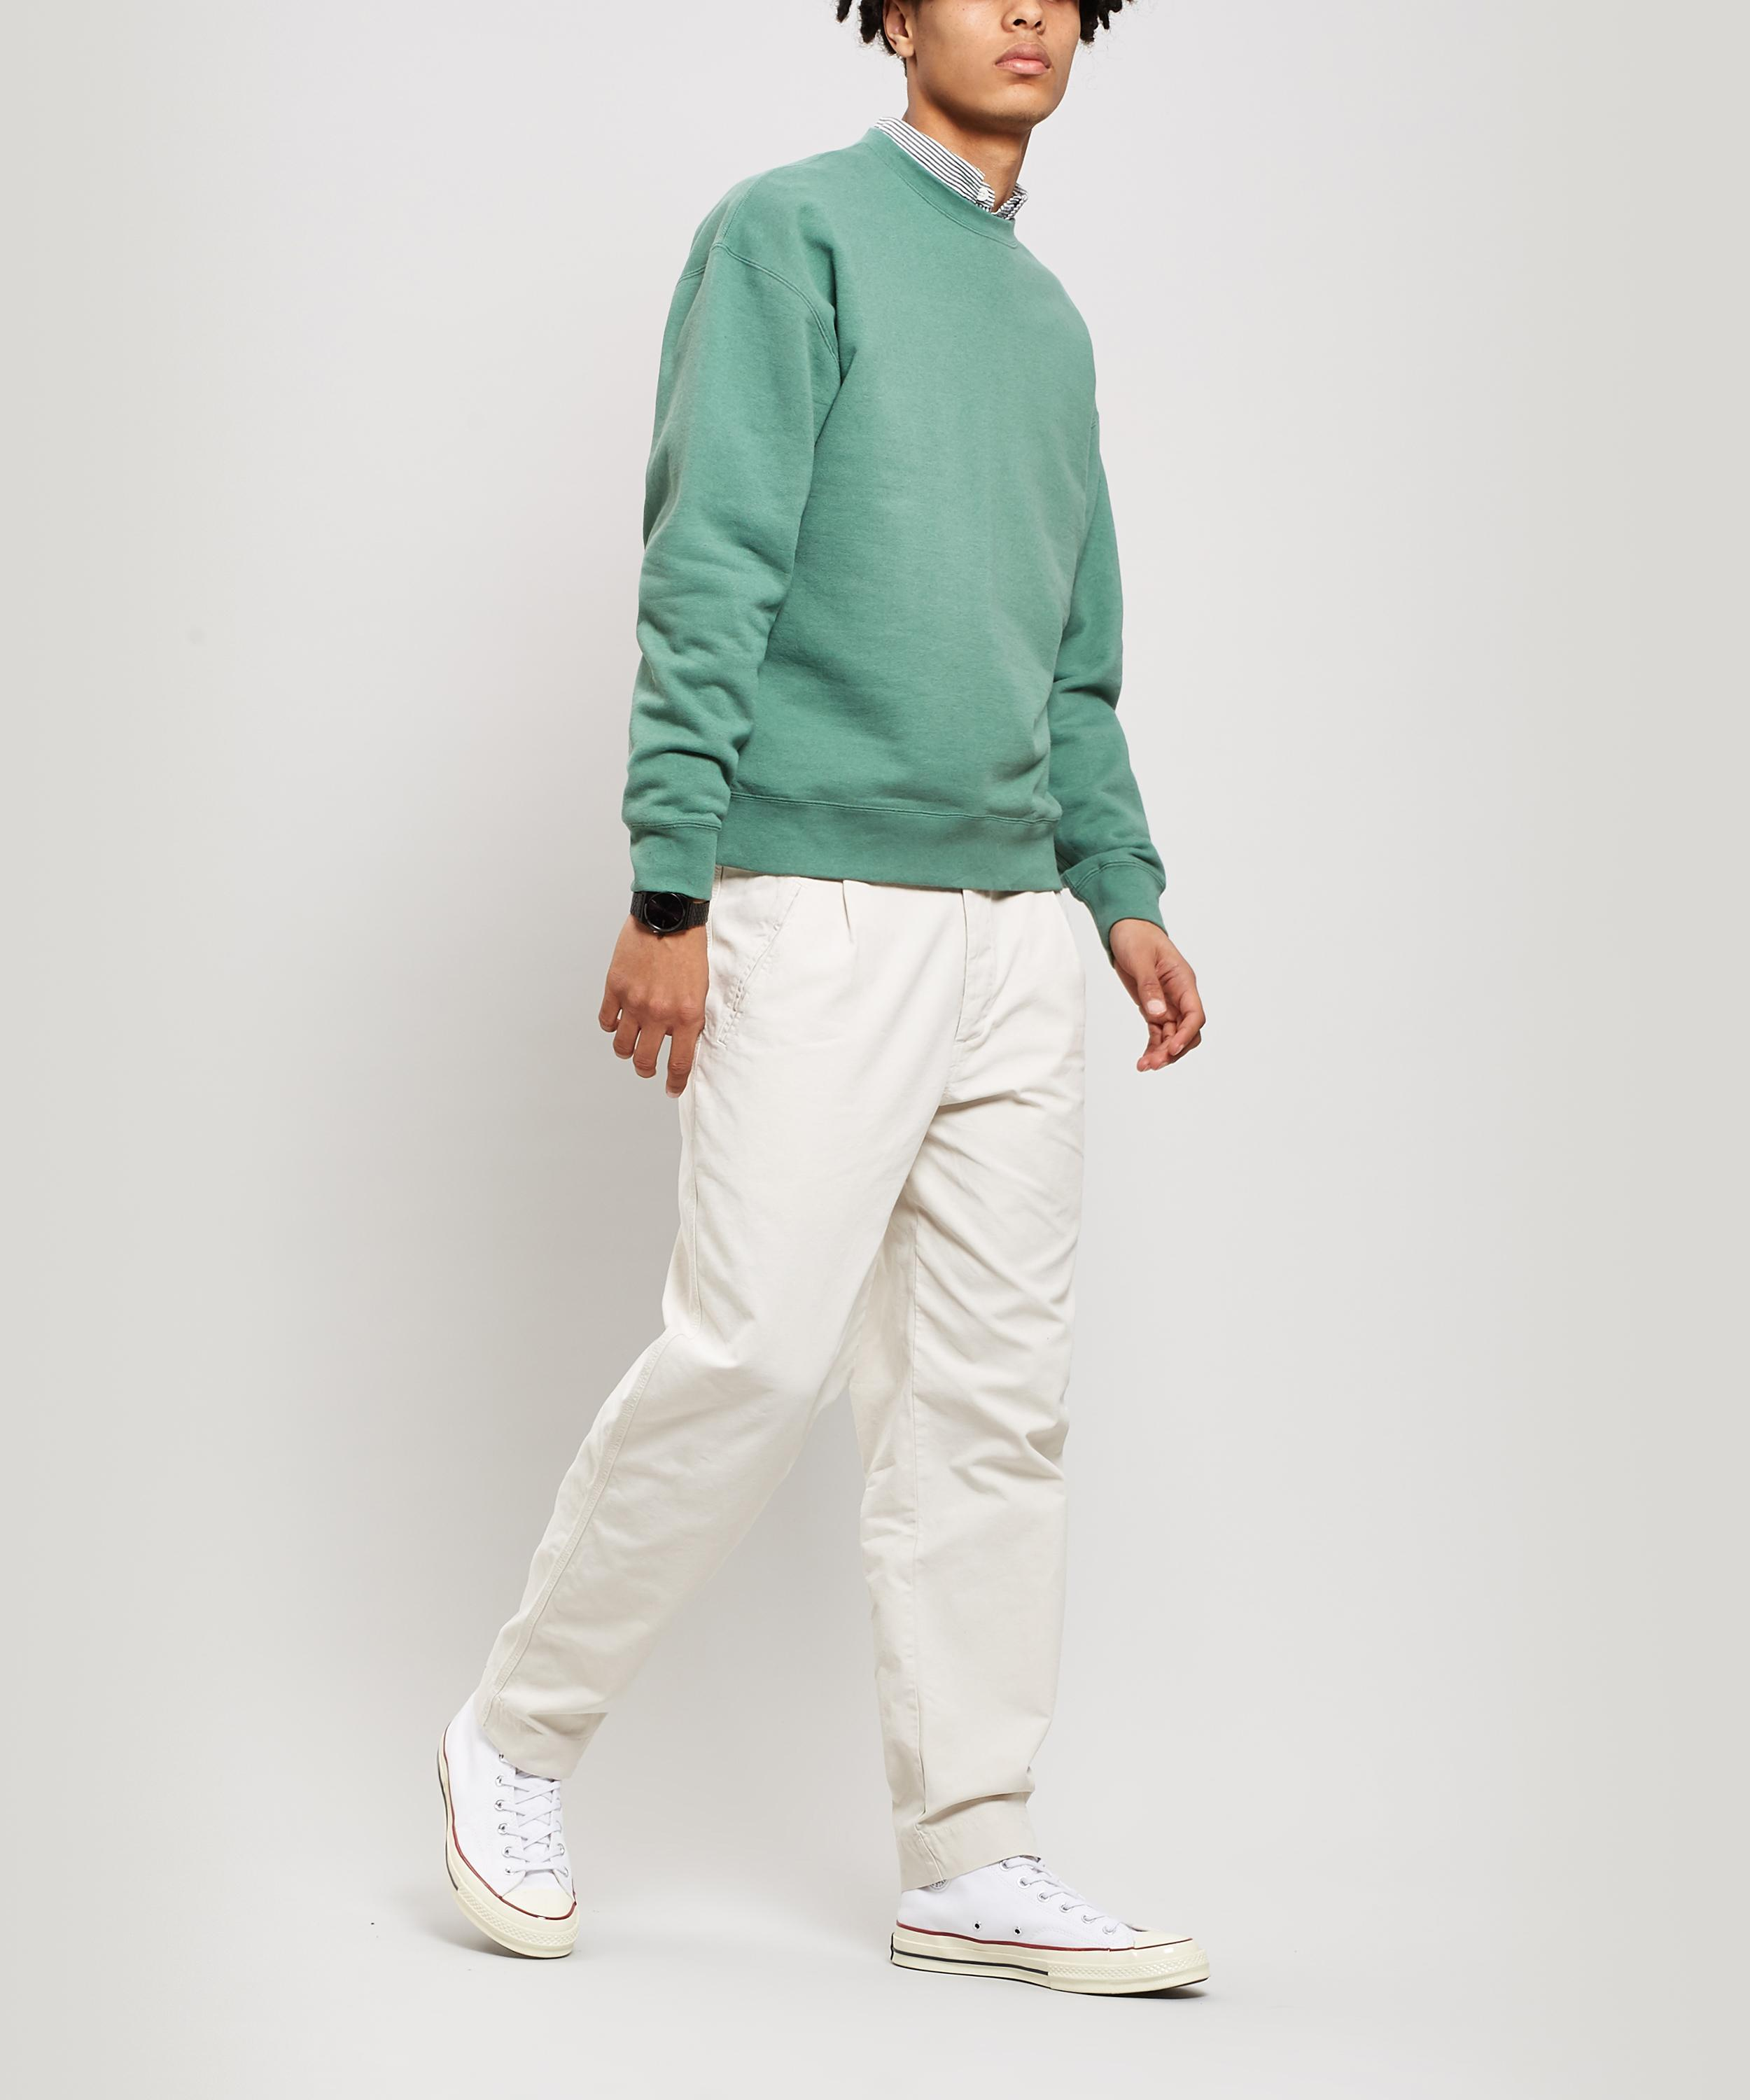 Beams Plus Crew-neck Cotton Sweater in Green for Men - Lyst